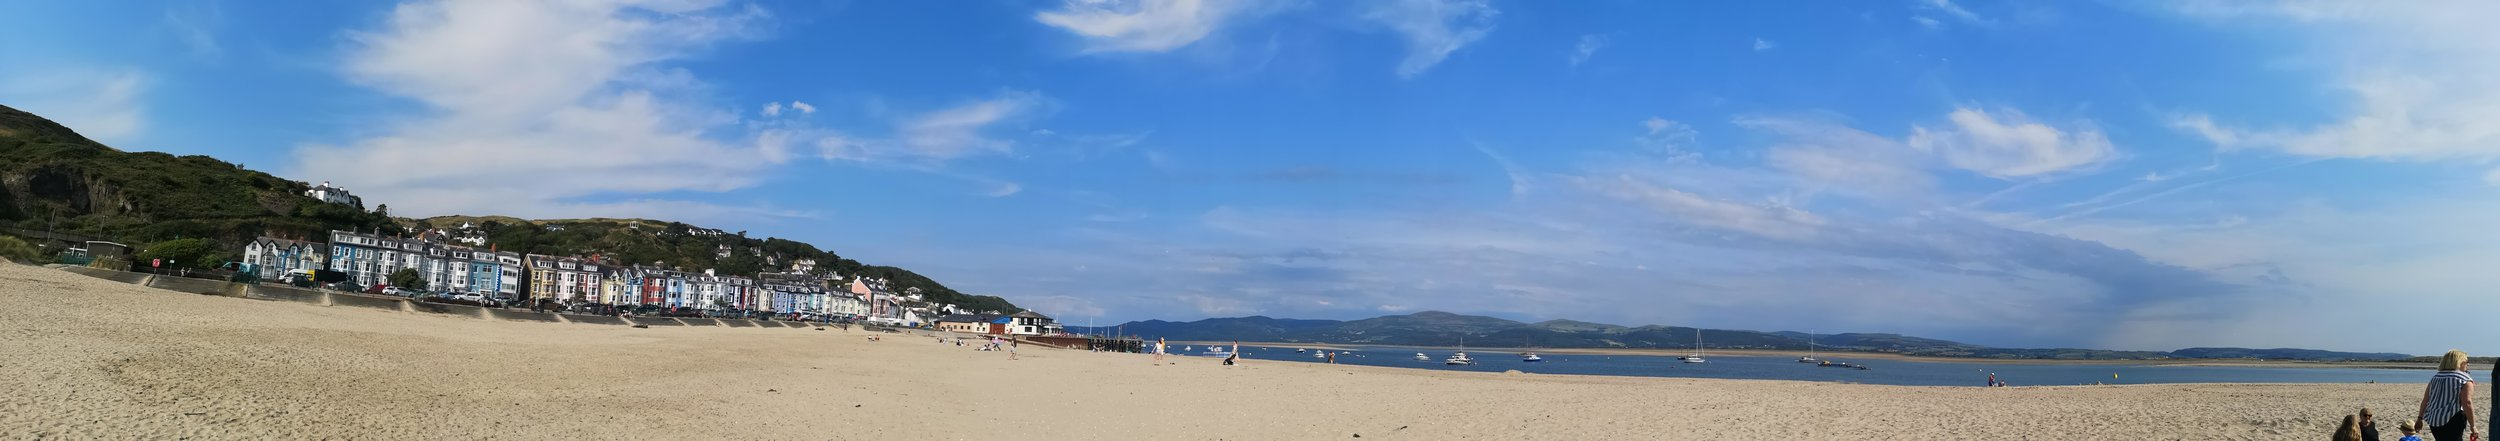 Photo of Aberdovey - Taken by Mackenzie.